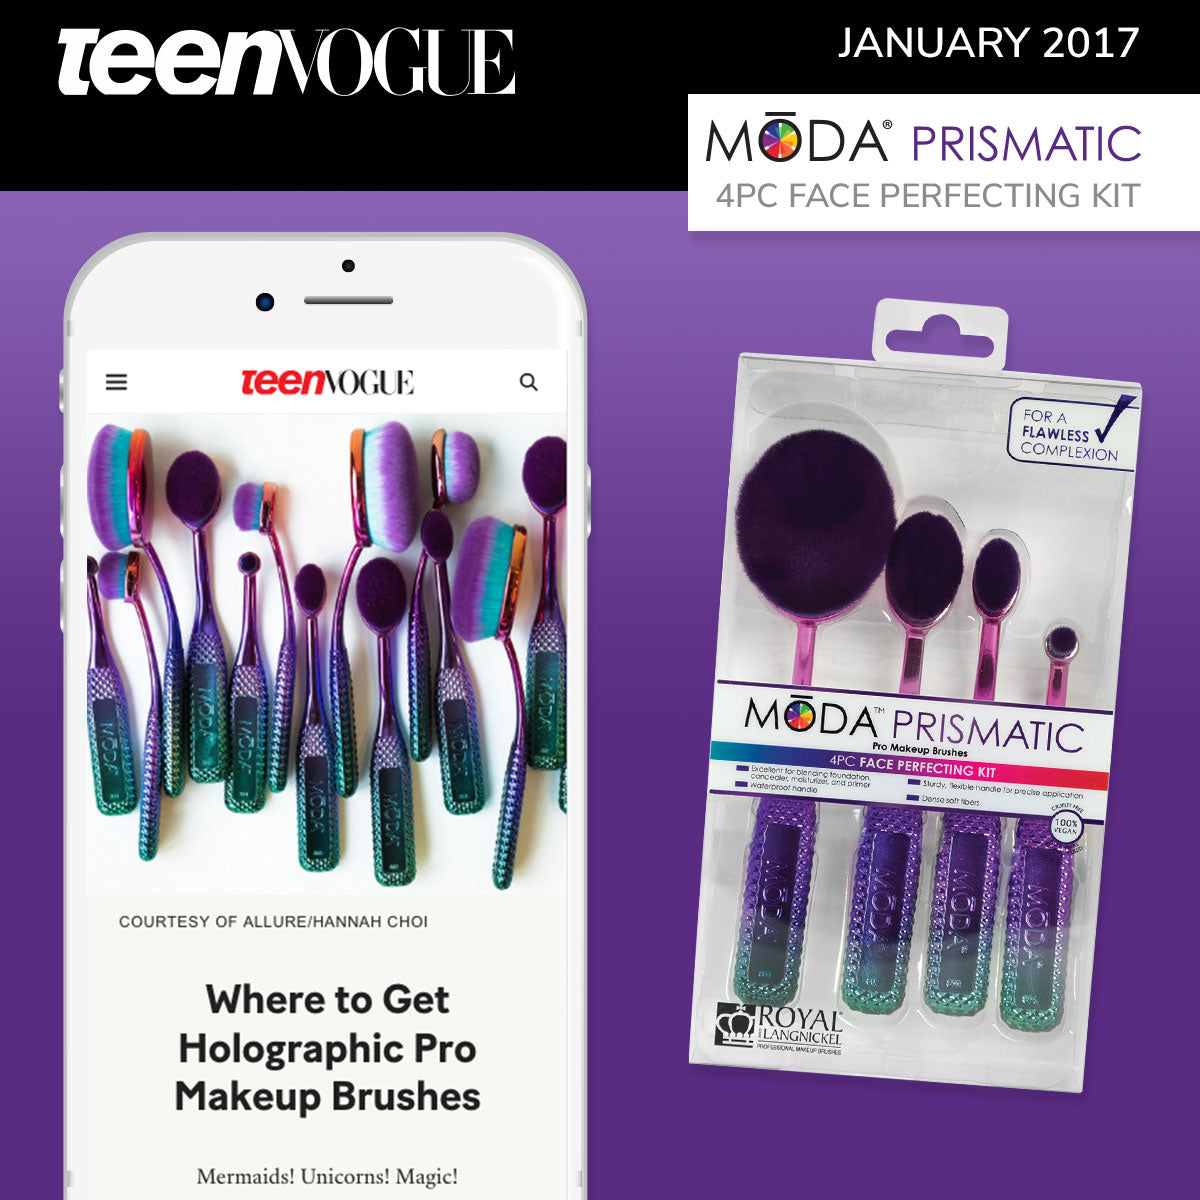 Teen Vogue Spotlight on our Moda Prismatic Face Perfecting Kit